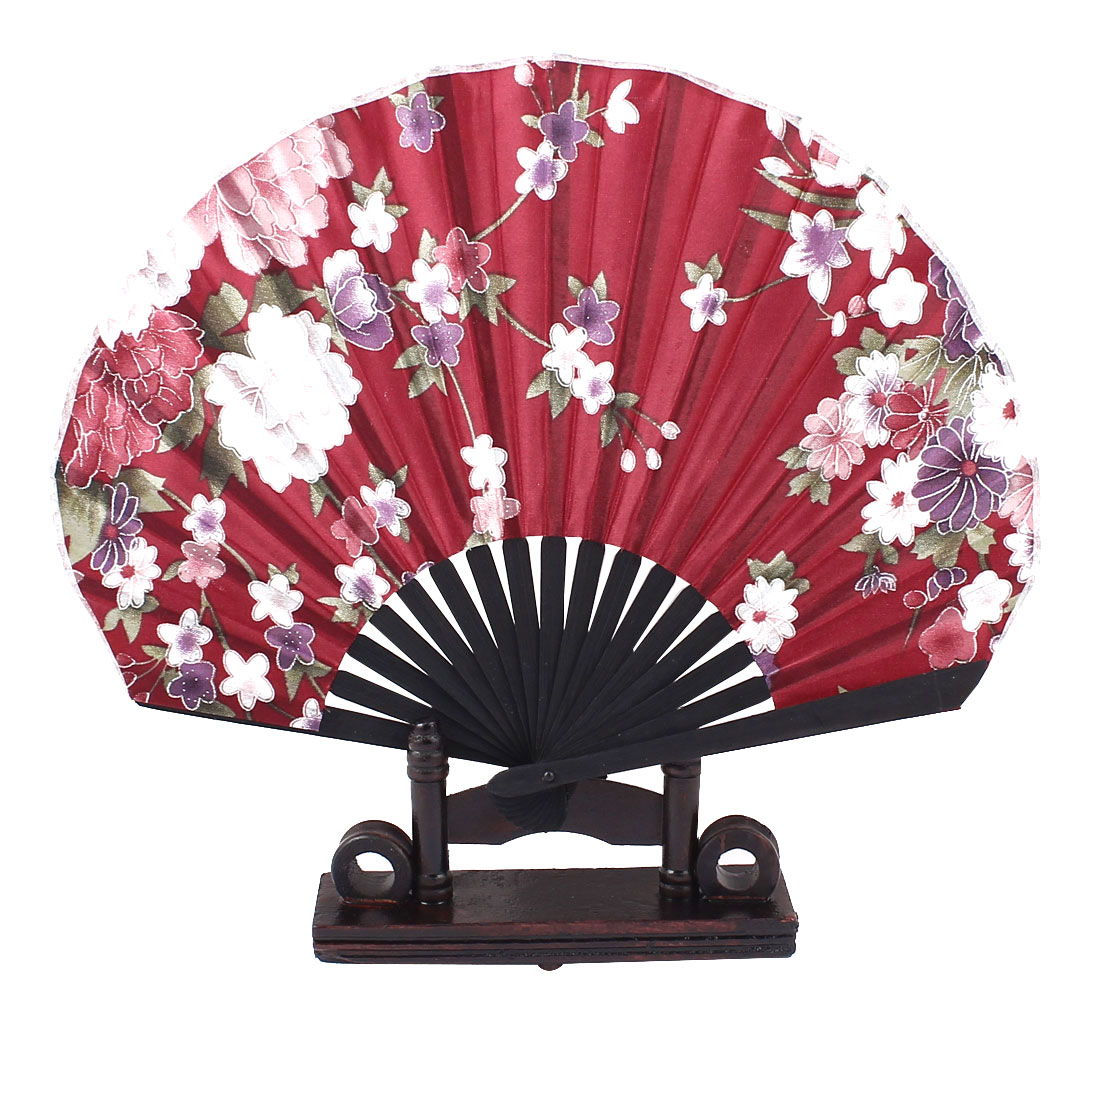 Bamboo Ribs Chinese Style Purple Pink Flower Pattern Black Fabric Cloth Folding Hand Fan Decor Gift w Display Holder